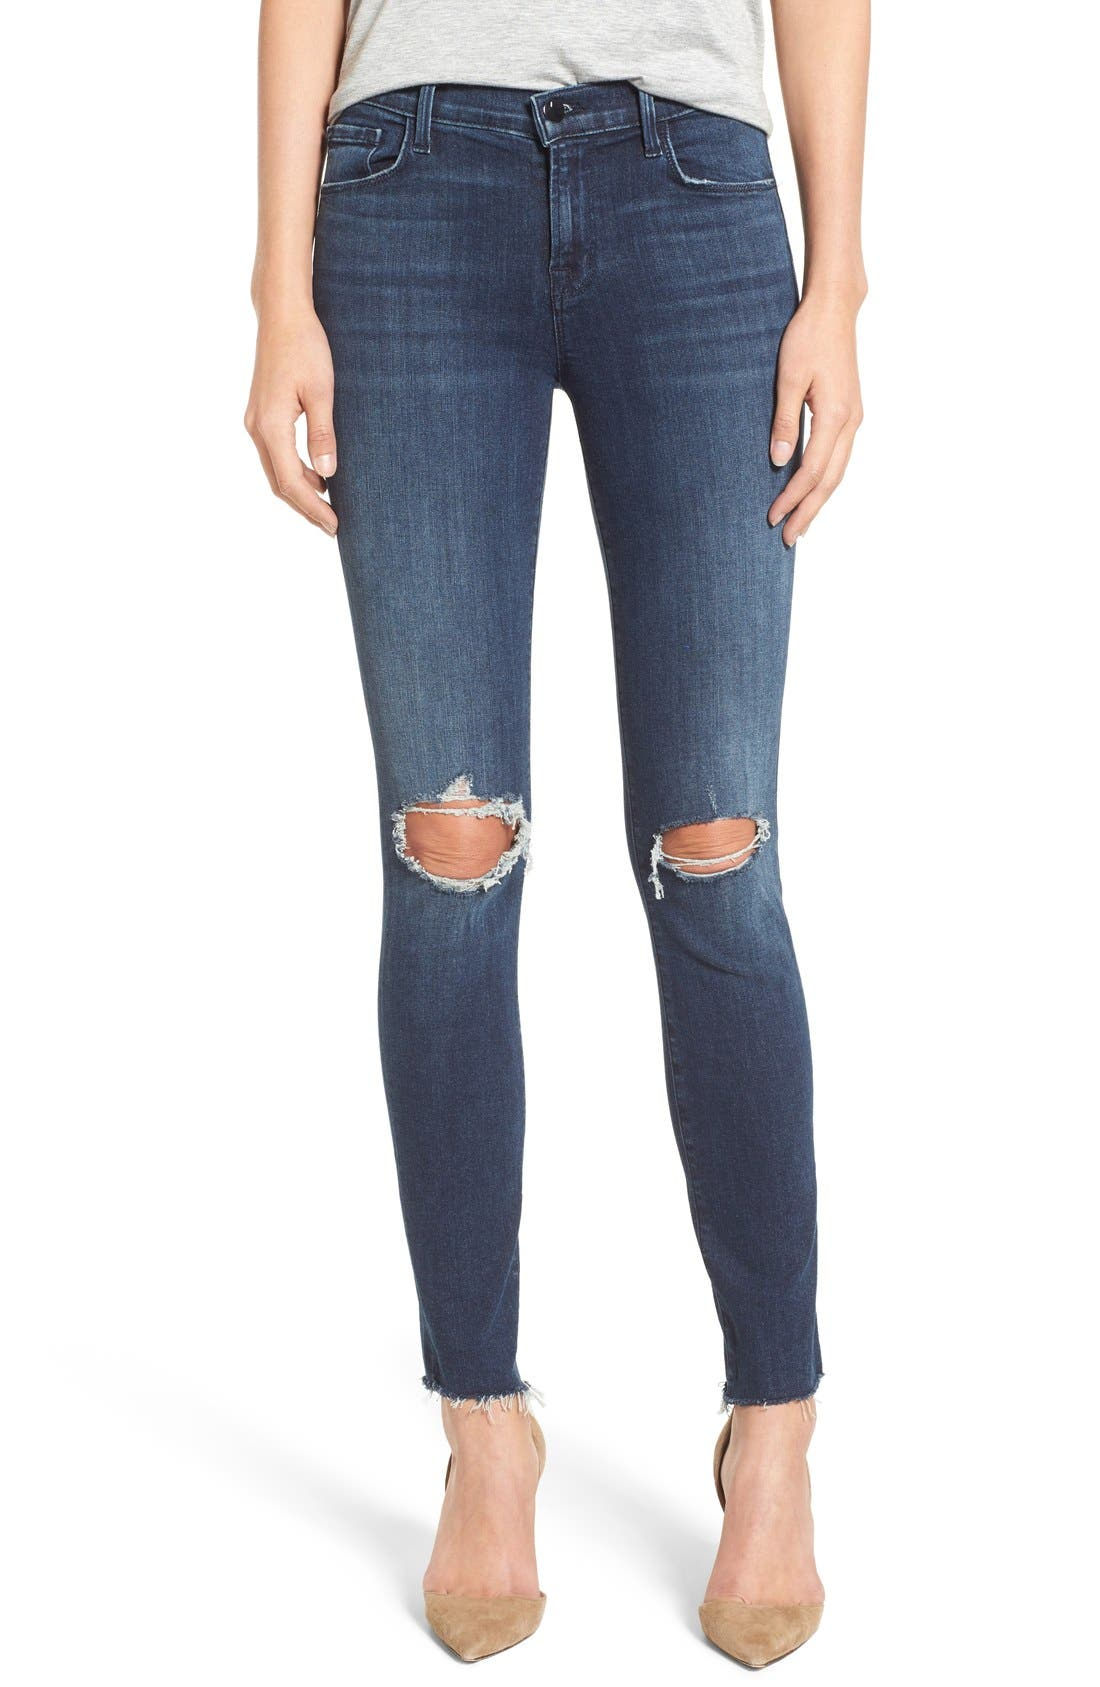 Alternate Image 1 Selected - J Brand '811' Ankle Skinny Jeans (Arcadia)